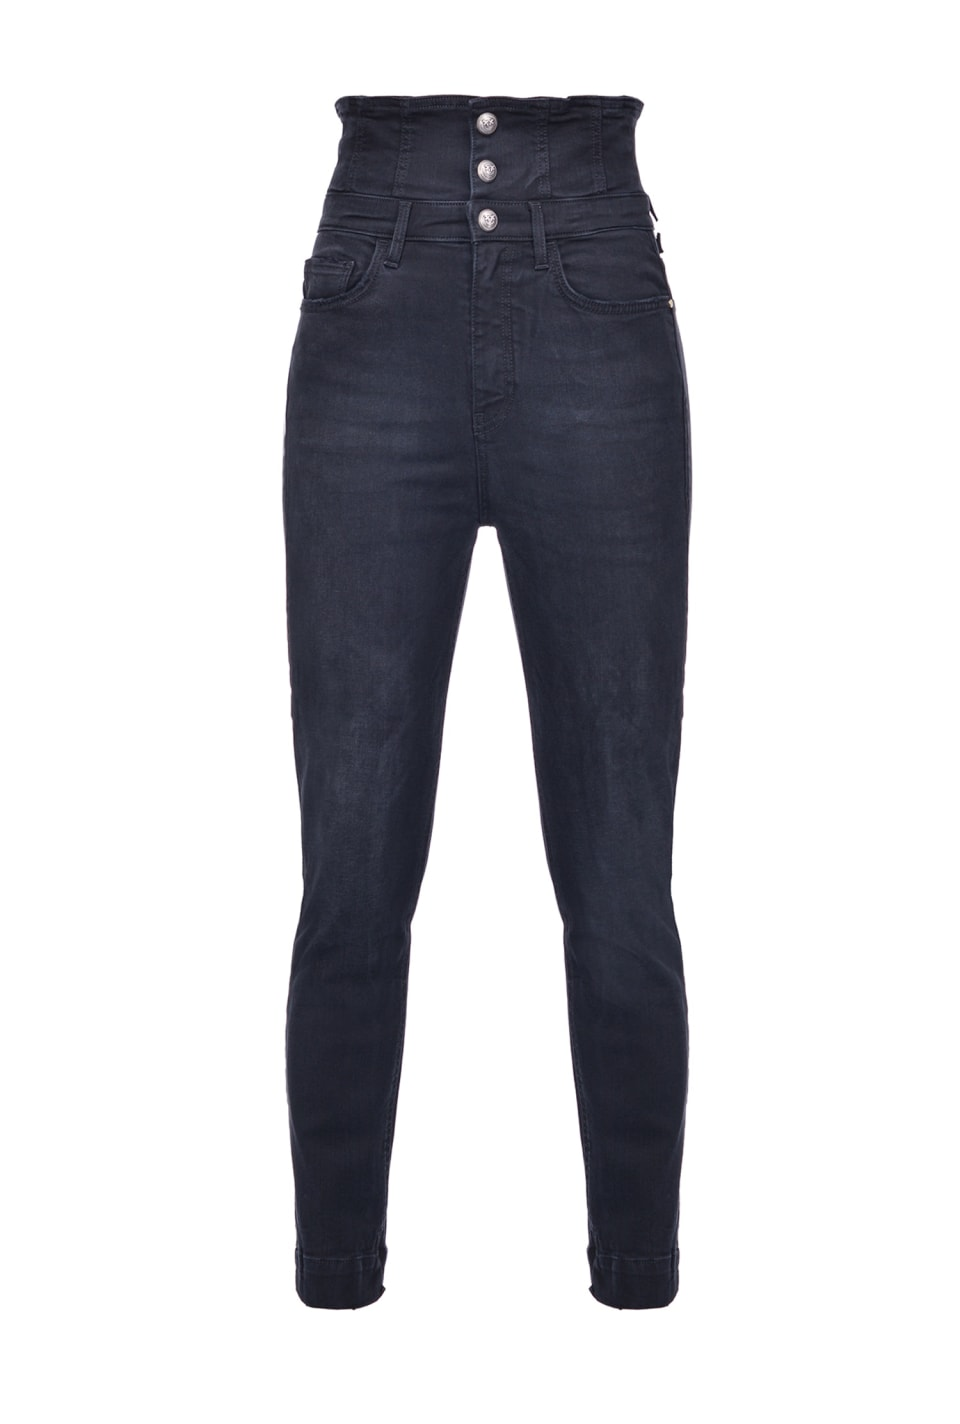 Skinny super high-rise jeans in black power stretch denim - Pinko